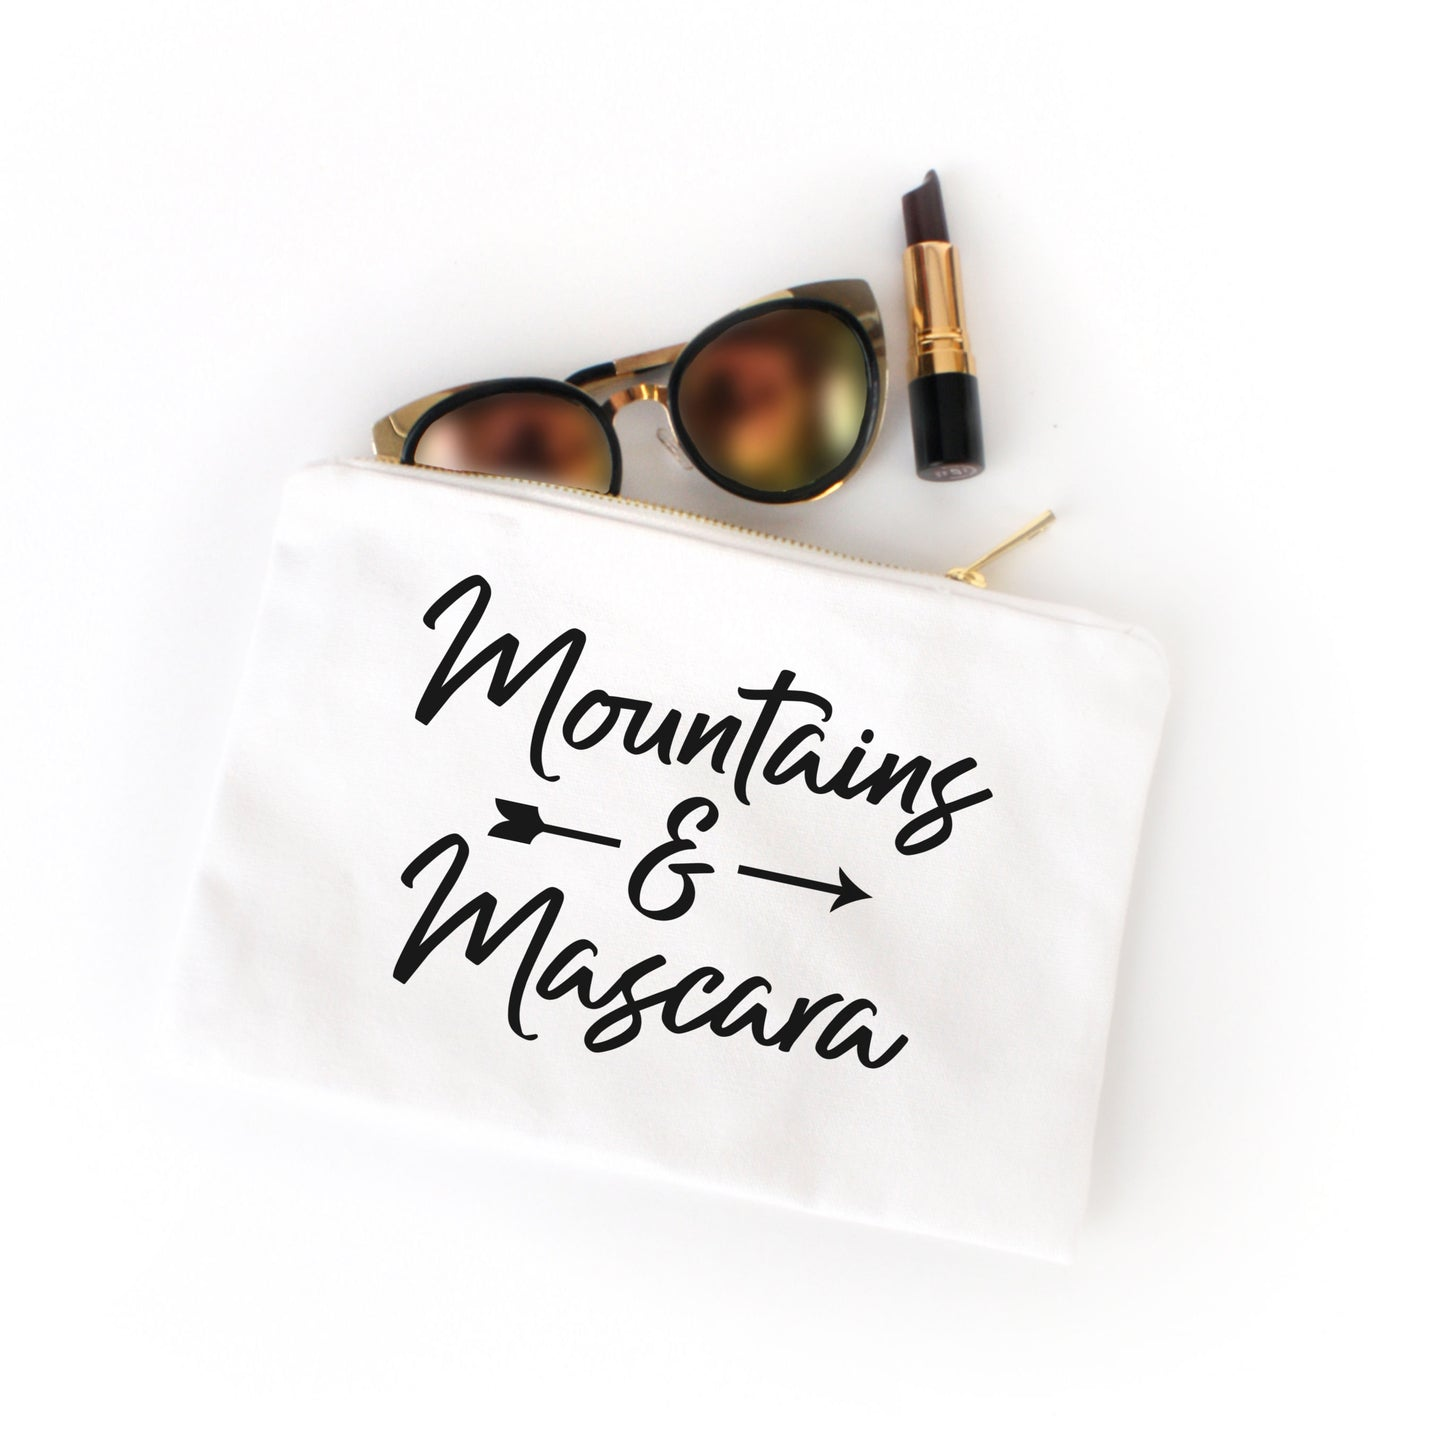 Mountains & Mascara white cotton canvas zippered cosmetic makeup bag from Modern Trail